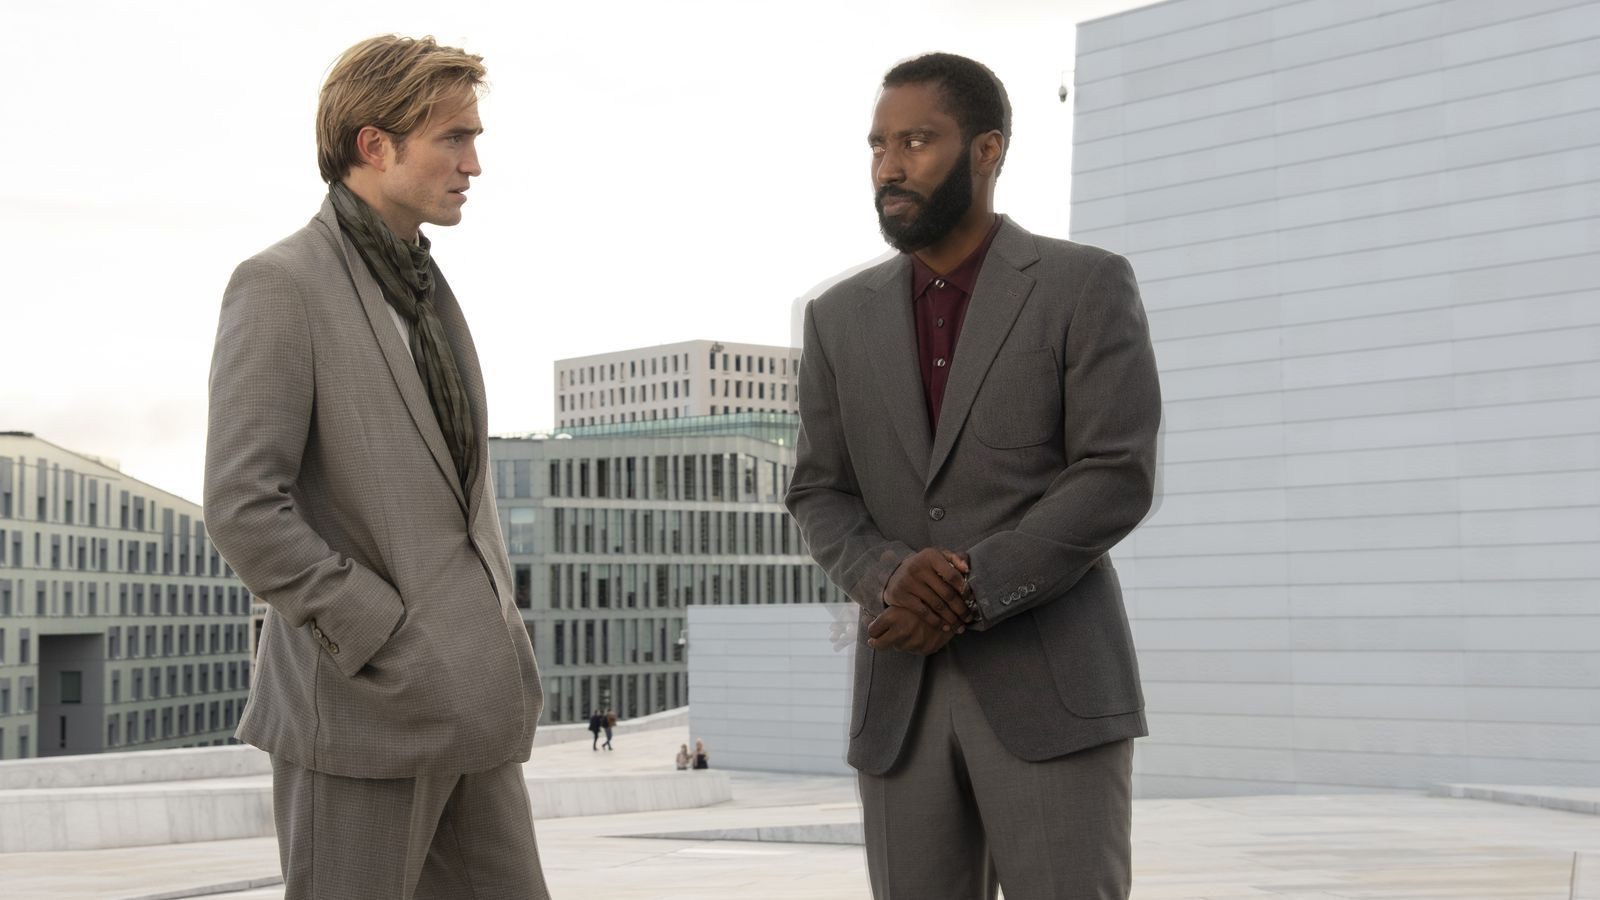 Robert Pattinson i John David Washington a la pel·lícula 'Tenet', de Christopher Nolan